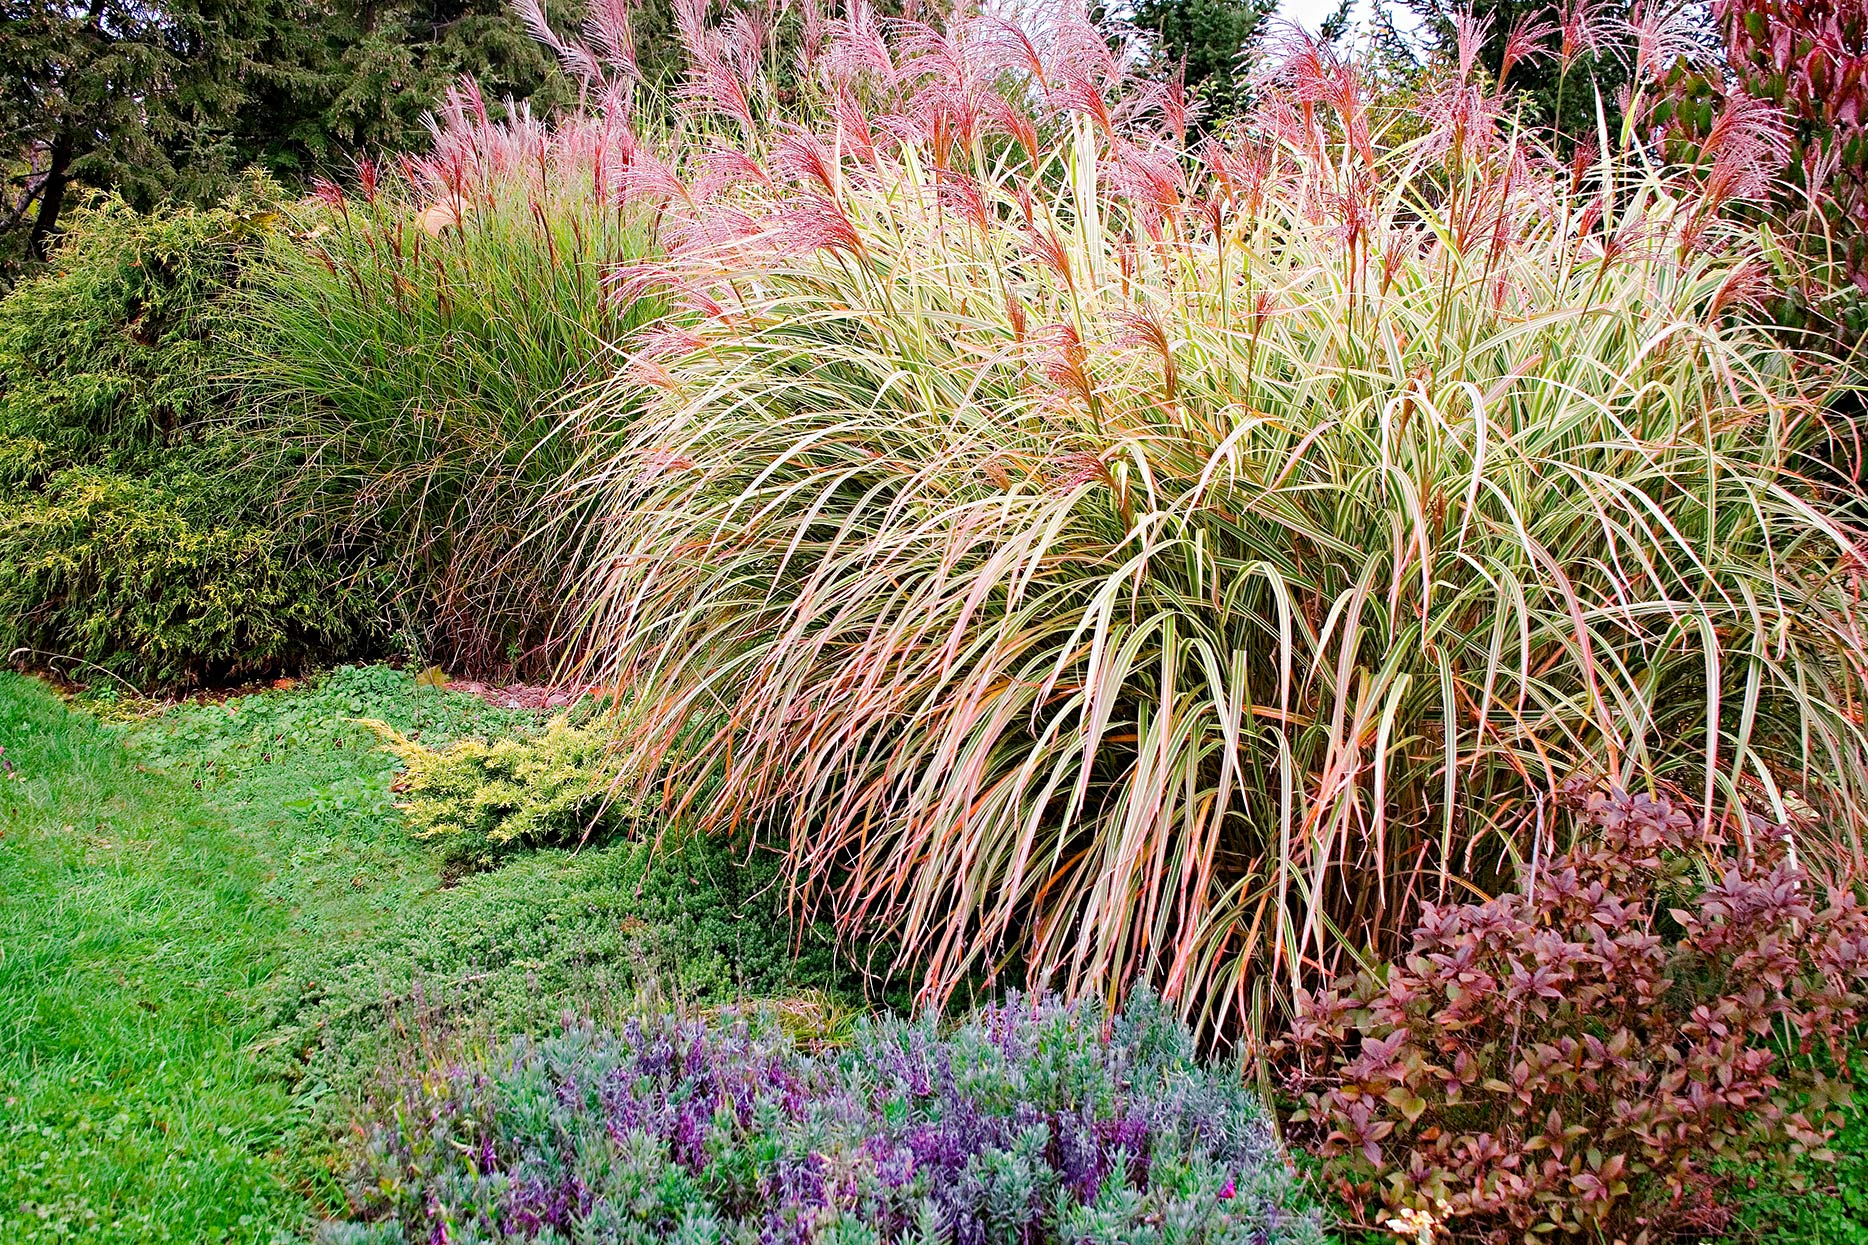 miscanthus-silvery-seed-heads-plumes-ec60ce44